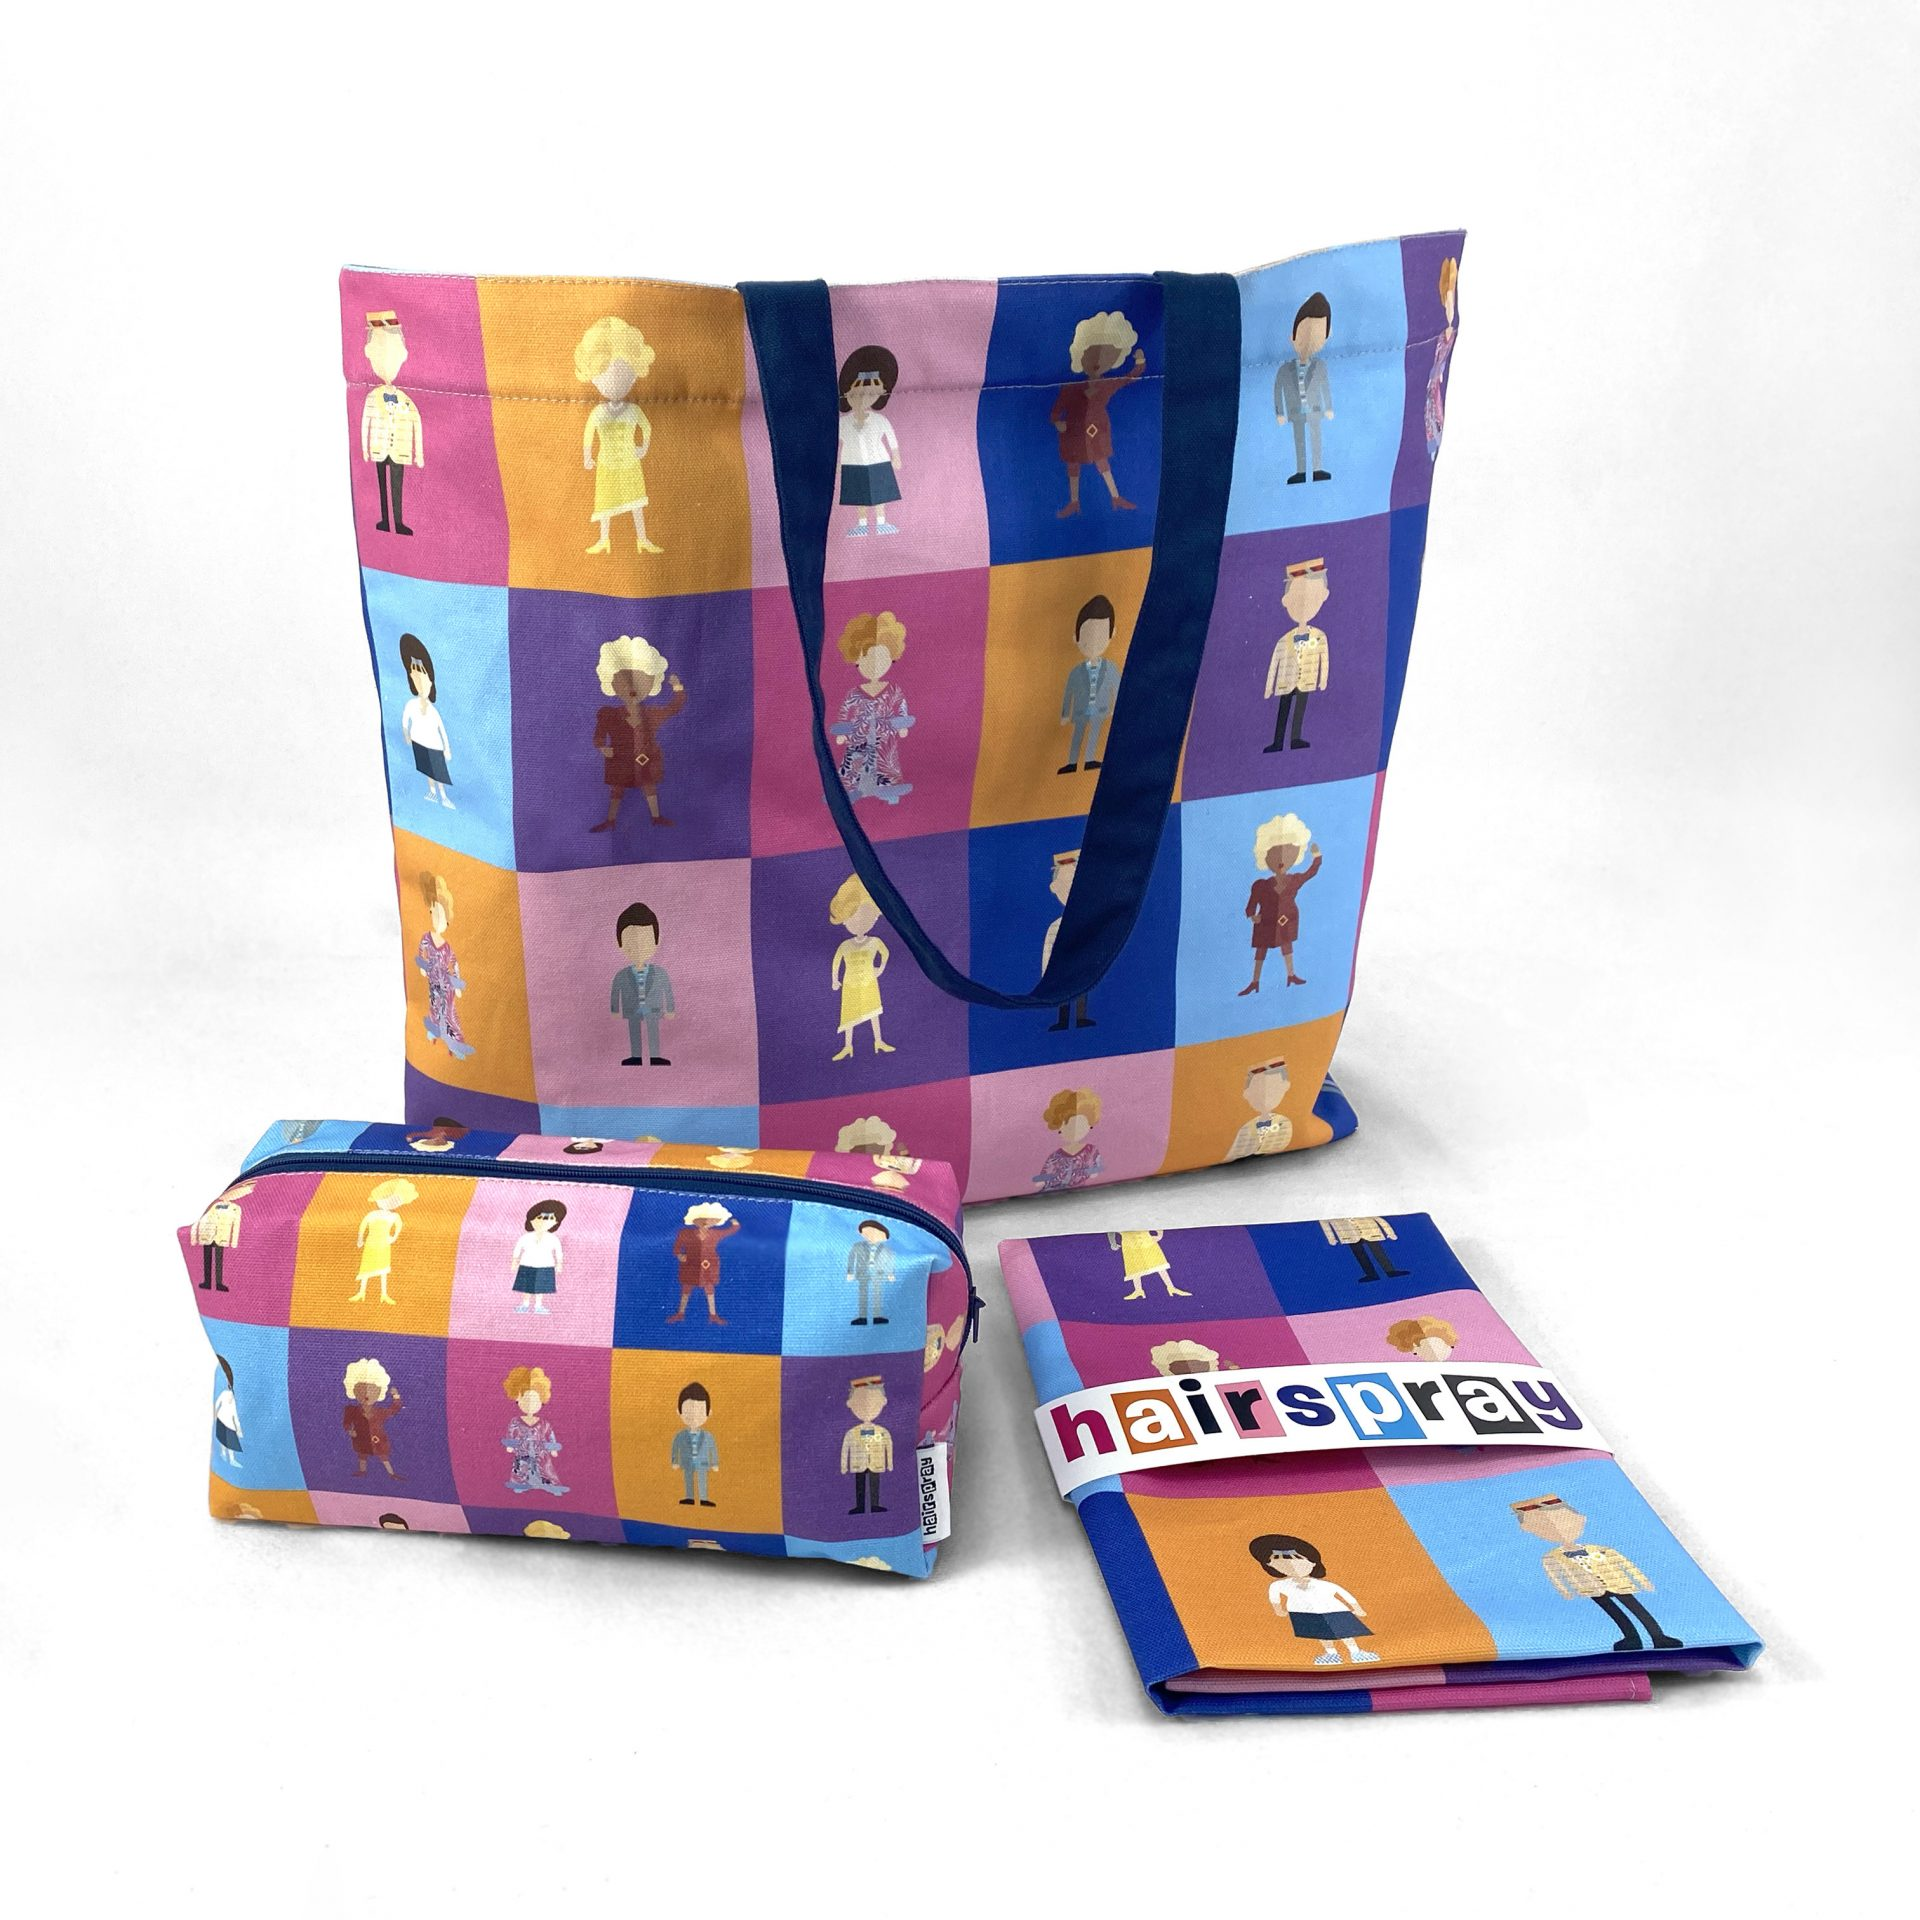 Hairspray collection of printed textile merchandise including a tote Bag, box cosmetic bag and tea towel